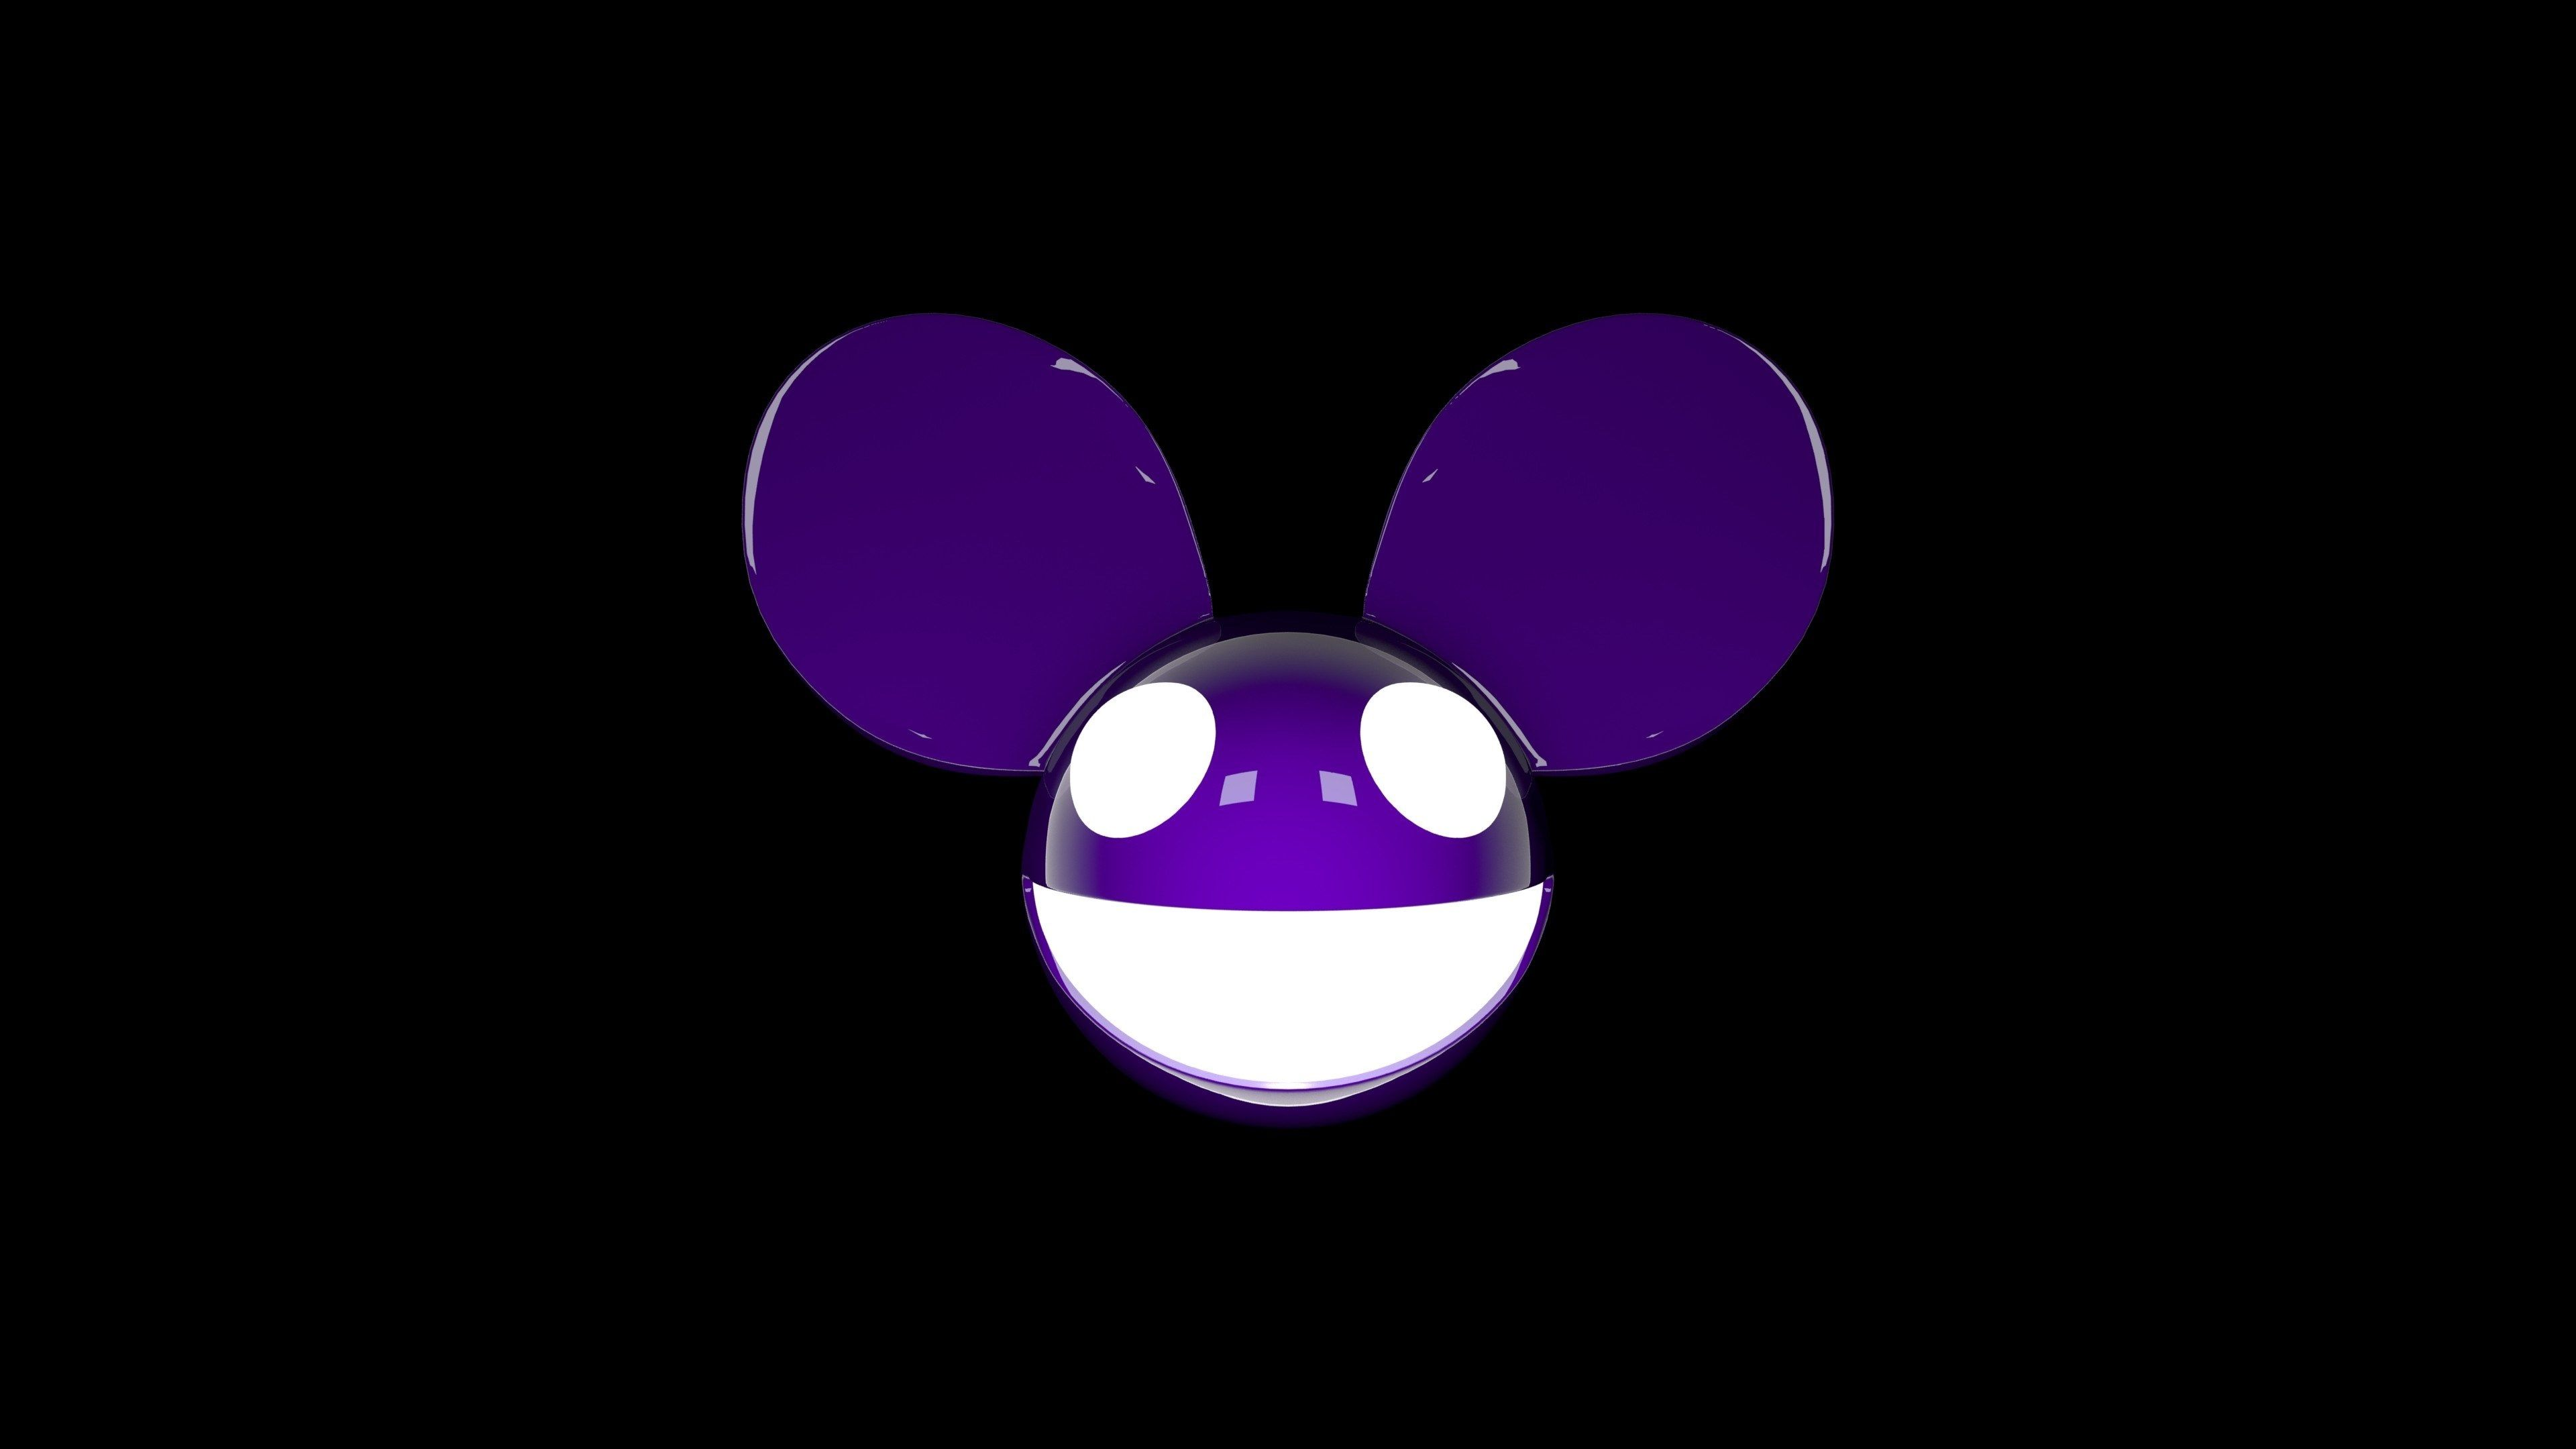 3840x2160 3840x2160 deadmau5 4k hd best wallpaper for desktop | ❤Deadmau5 ...